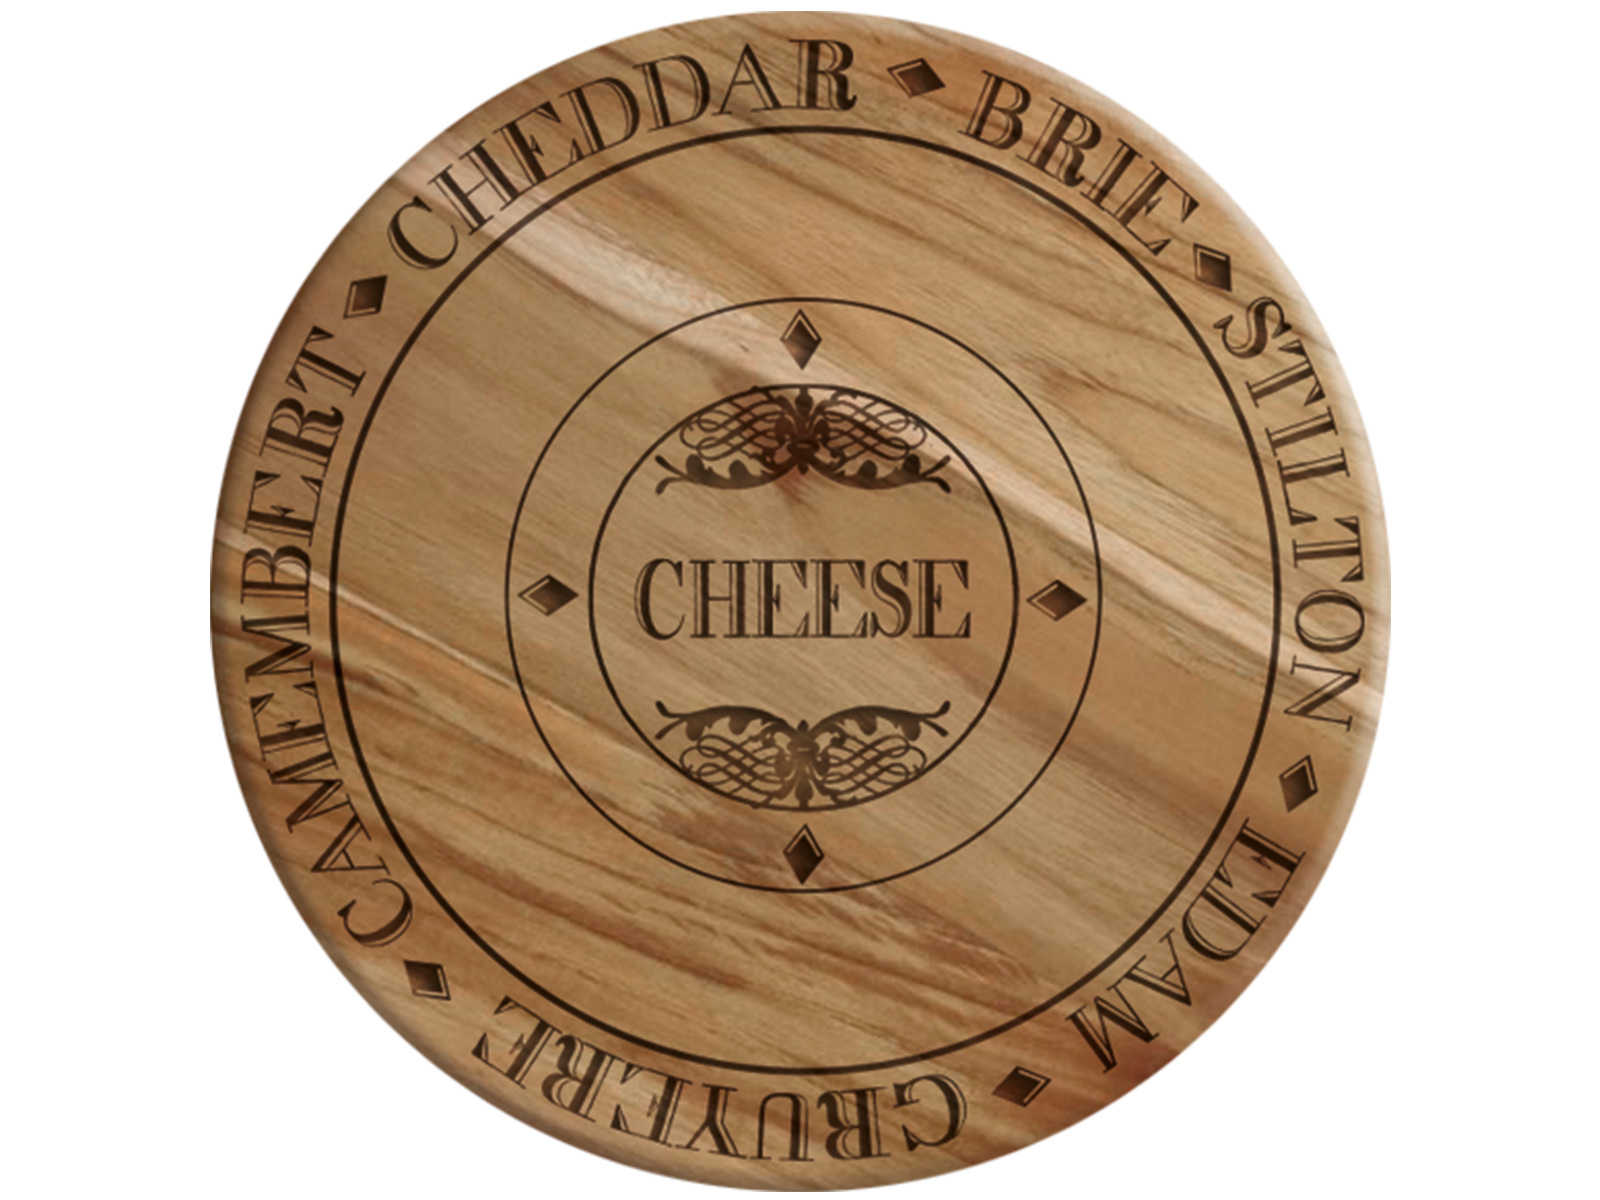 Creative Tops Gourmet Cheese Wooden Cheese Board